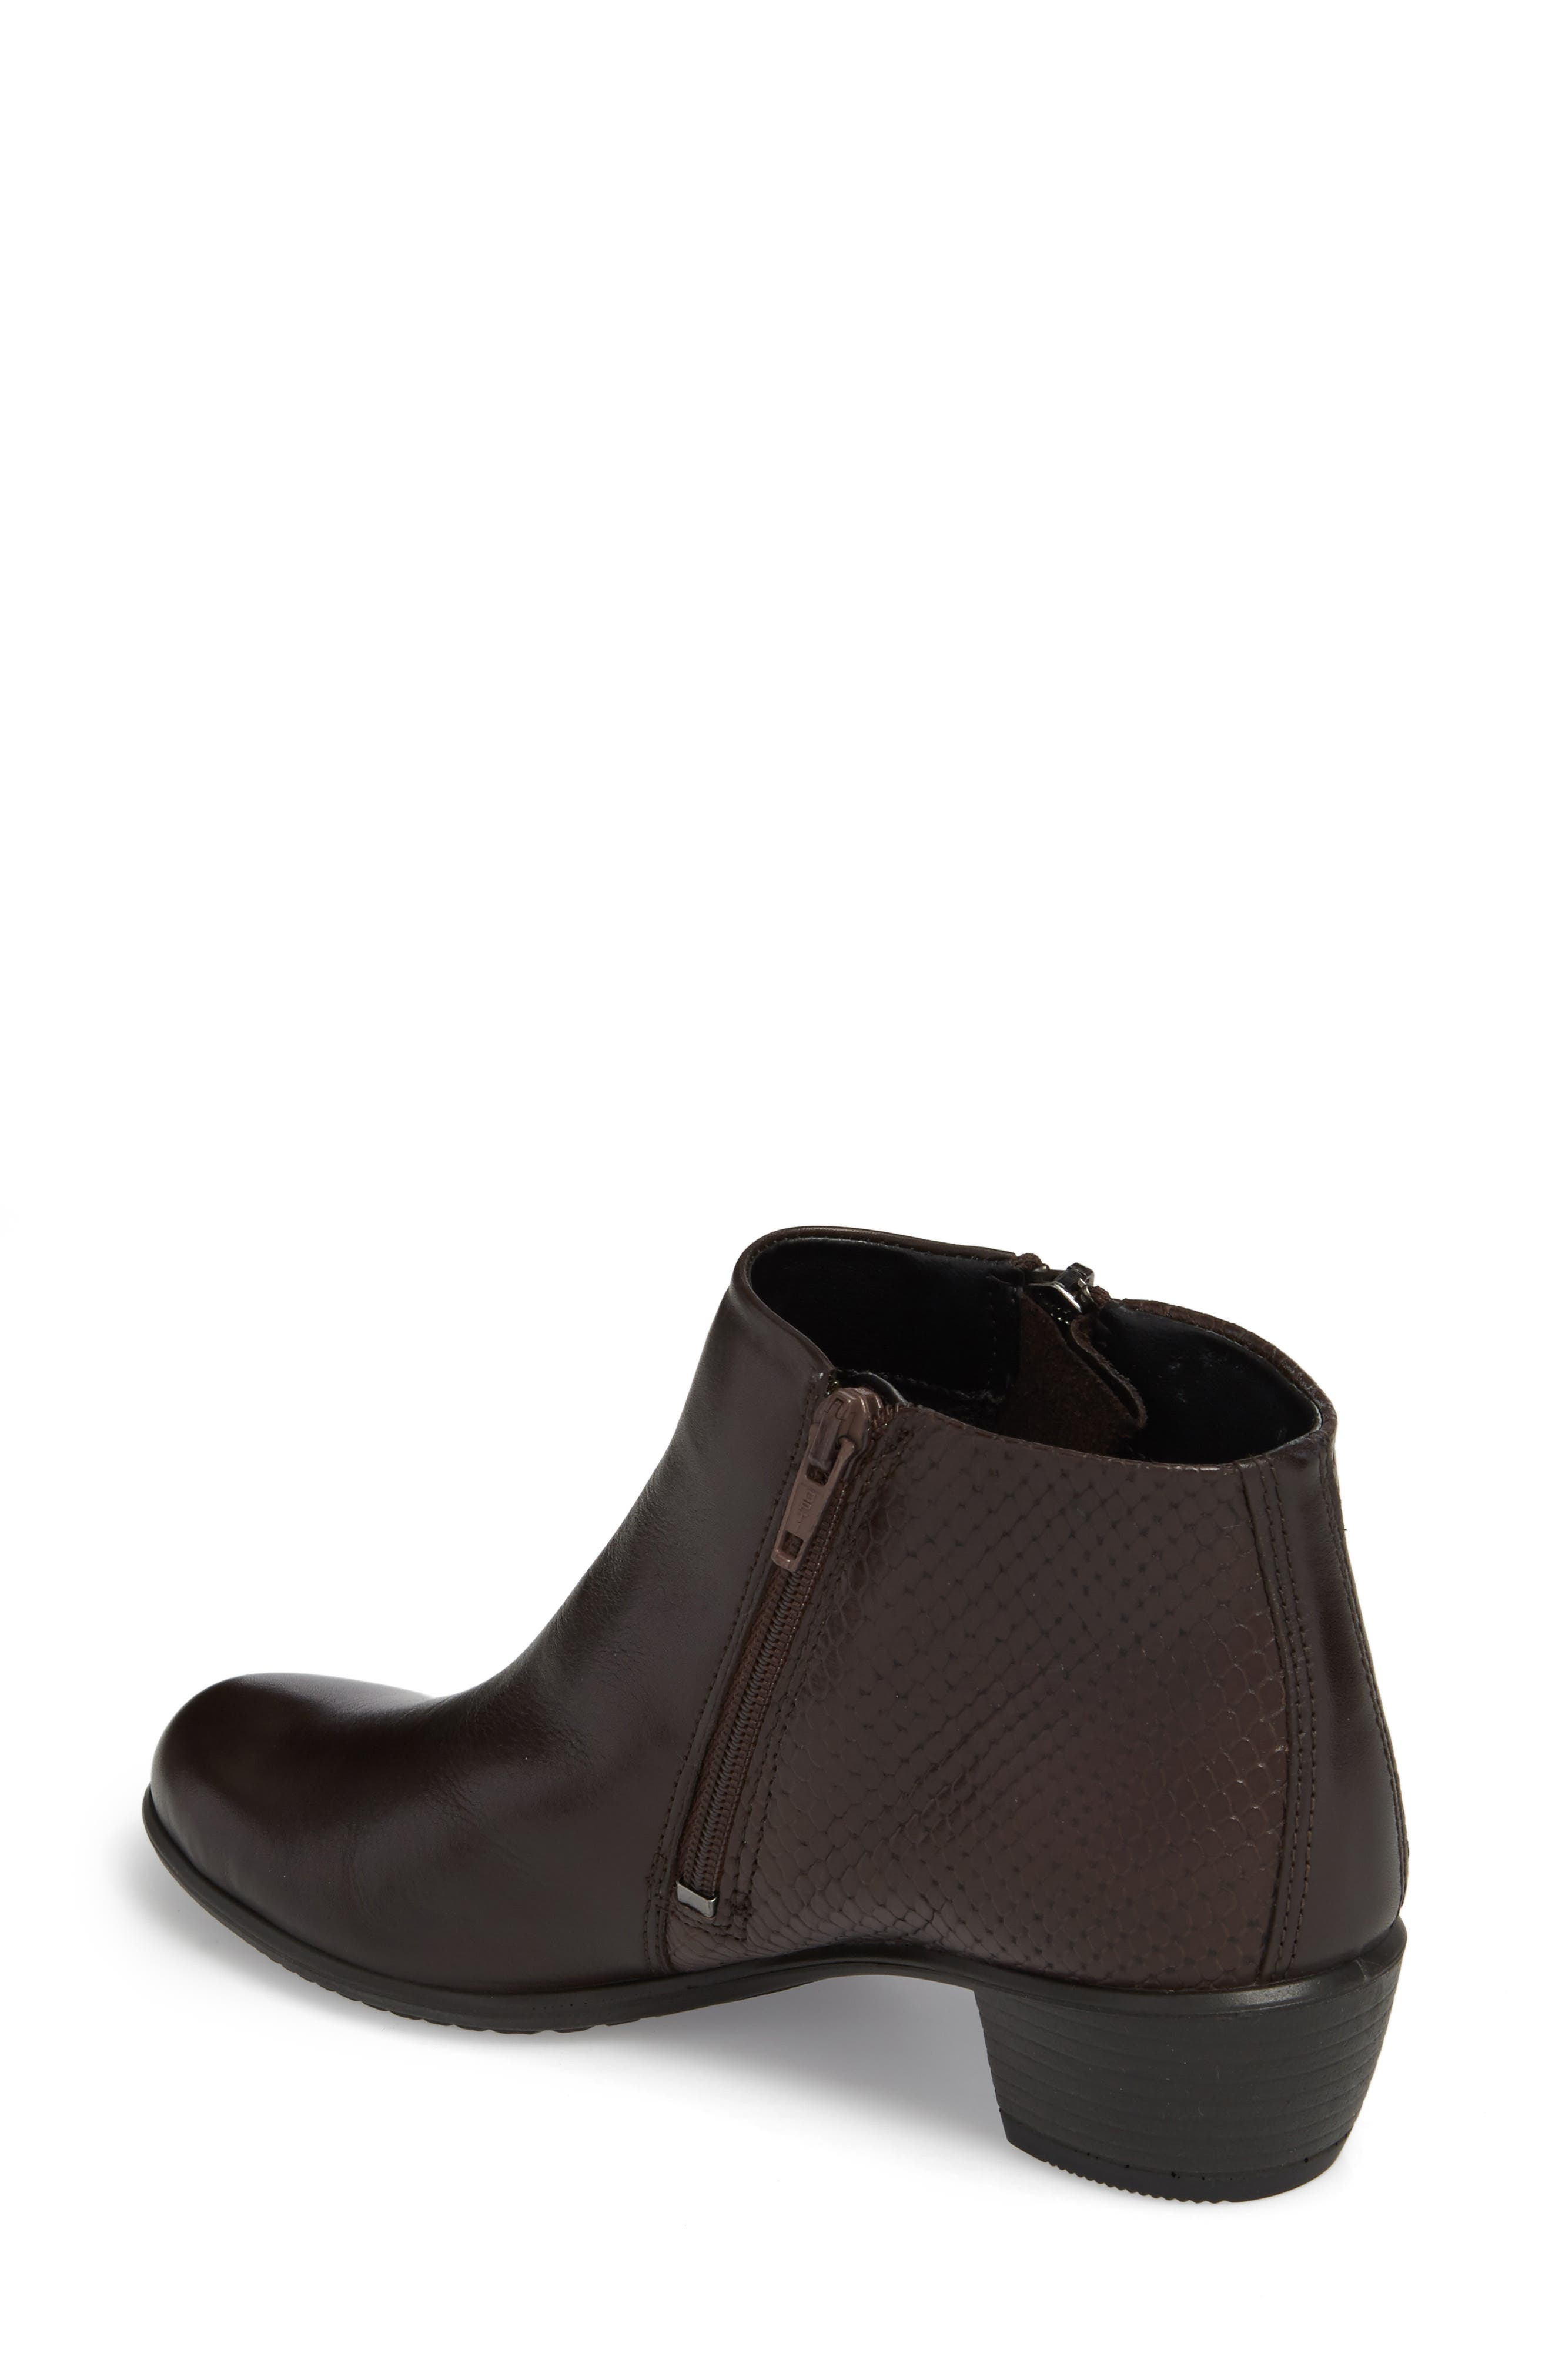 'Touch' Zip Bootie,                             Alternate thumbnail 2, color,                             Coffee Leather